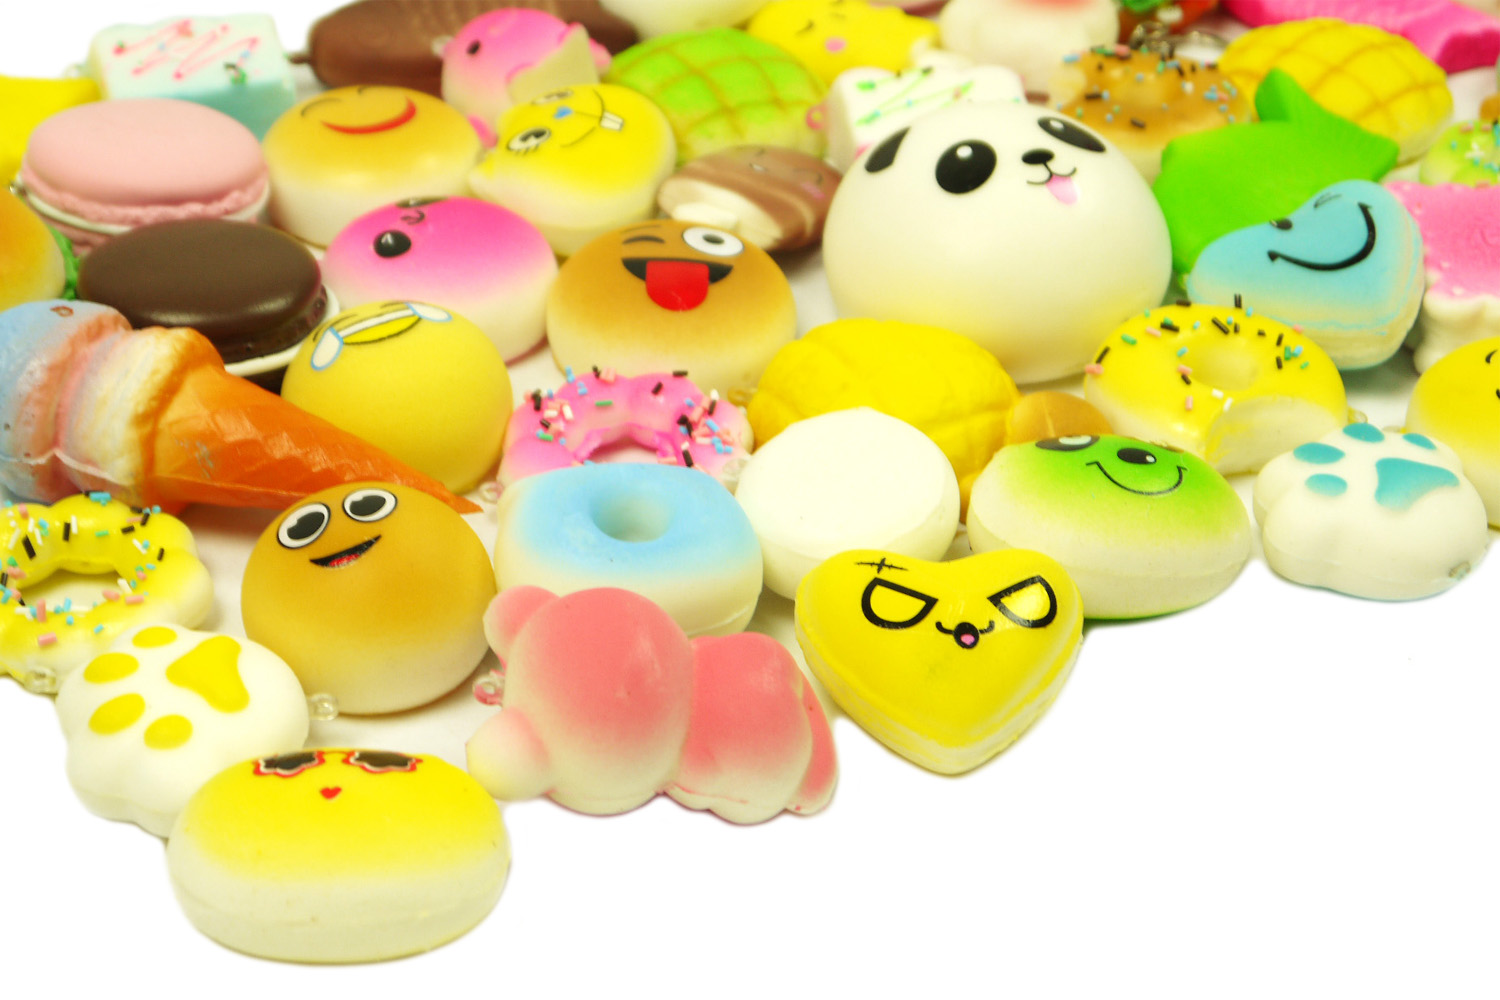 Squishy Donuts Kawaii : MS 12pcs Random Mini Kawaii Squishies Soft Foods Panda Donuts Cell Phone Charms eBay